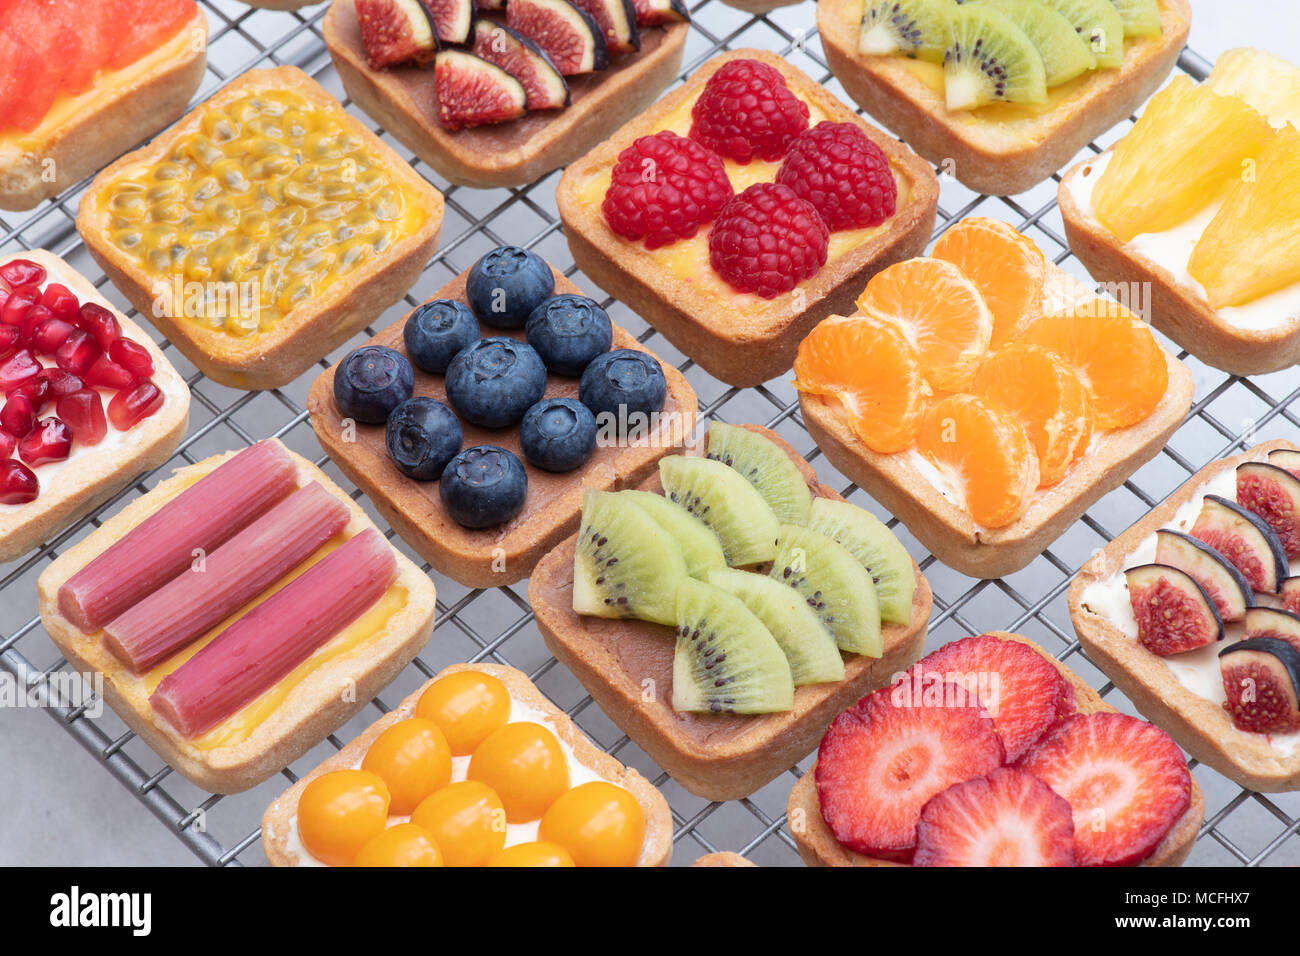 Colourful square fruit tarts on a wire cooling rack against a white background Stock Photo